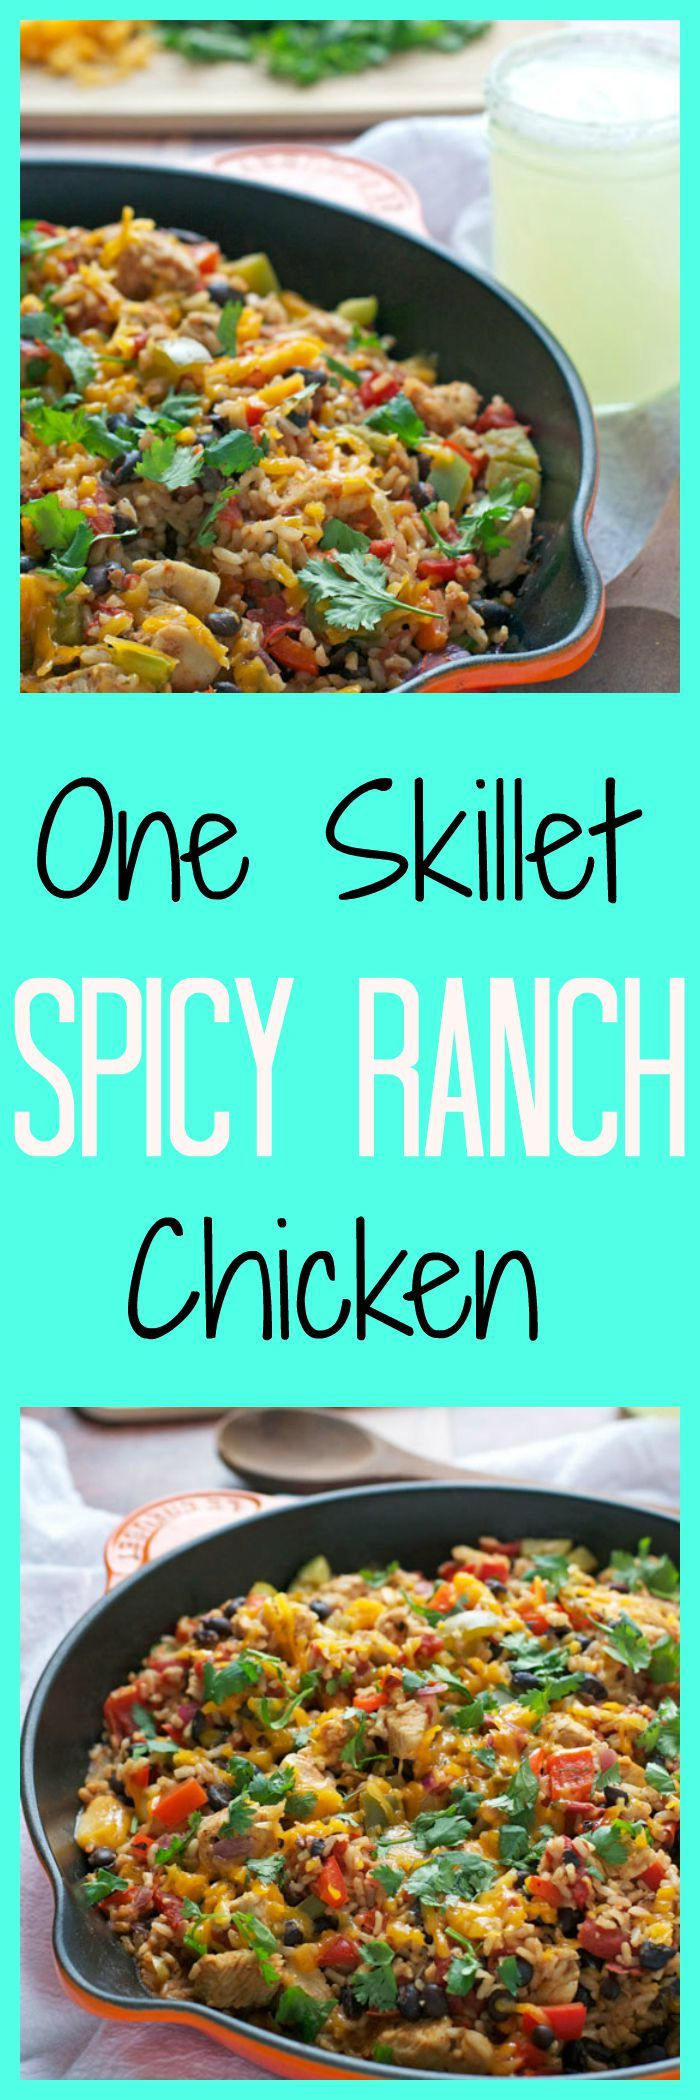 One Skillet Spicy Ranch Chicken (Dinner) (Chicken breasts, onion, Hidden Valley Spicy Ranch Mix, red pepper, green pepper, black beans, diced tomatoes, instant rice, chicken broth, shredded cheese, cilantro)